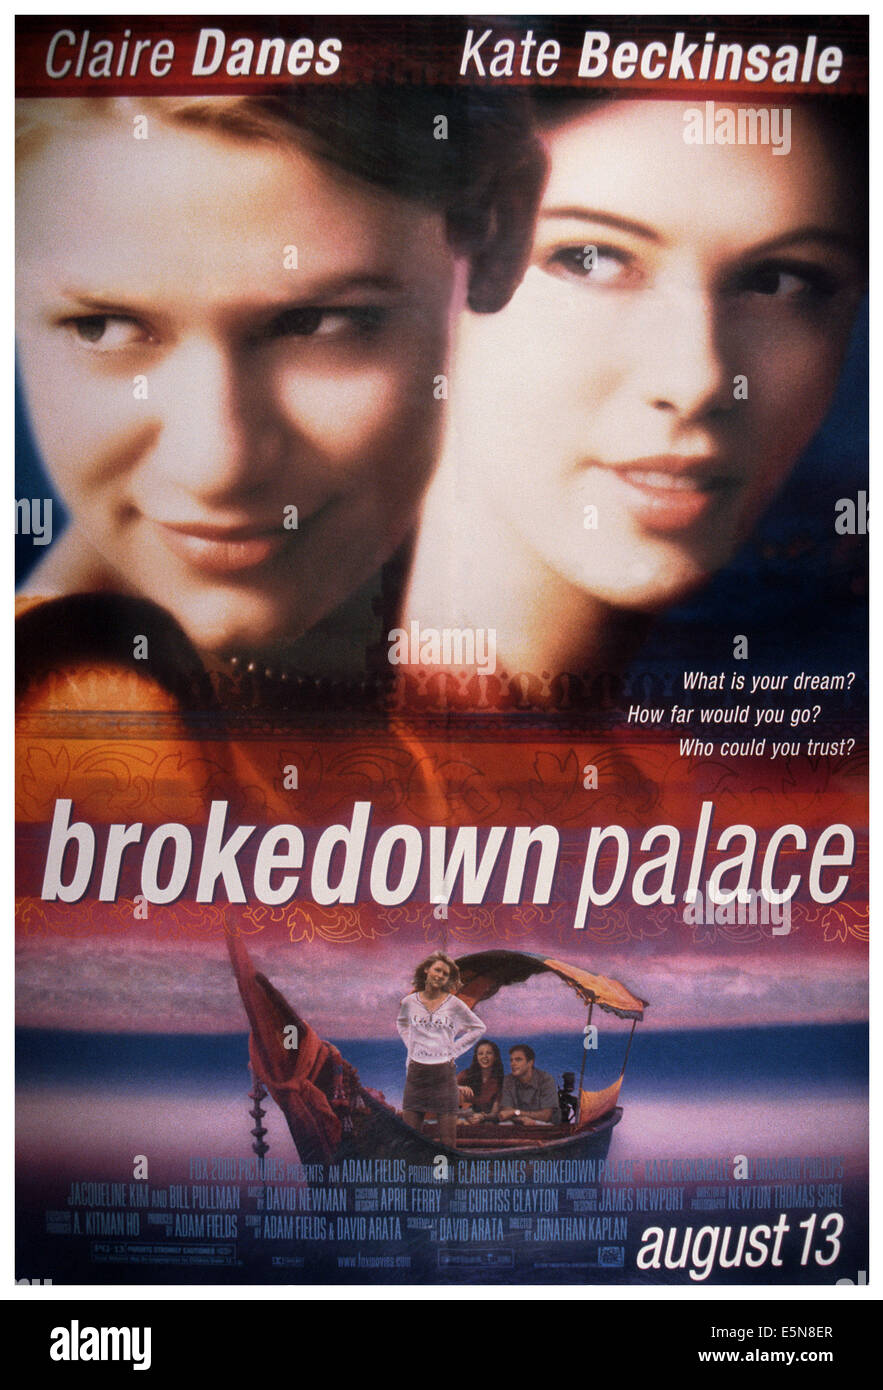 BROKEDOWN PALACE, from left: Claire Danes, Kate Beckinsale, 1998. ©20th Century-Fox Film Corporation, TM & - Stock Image